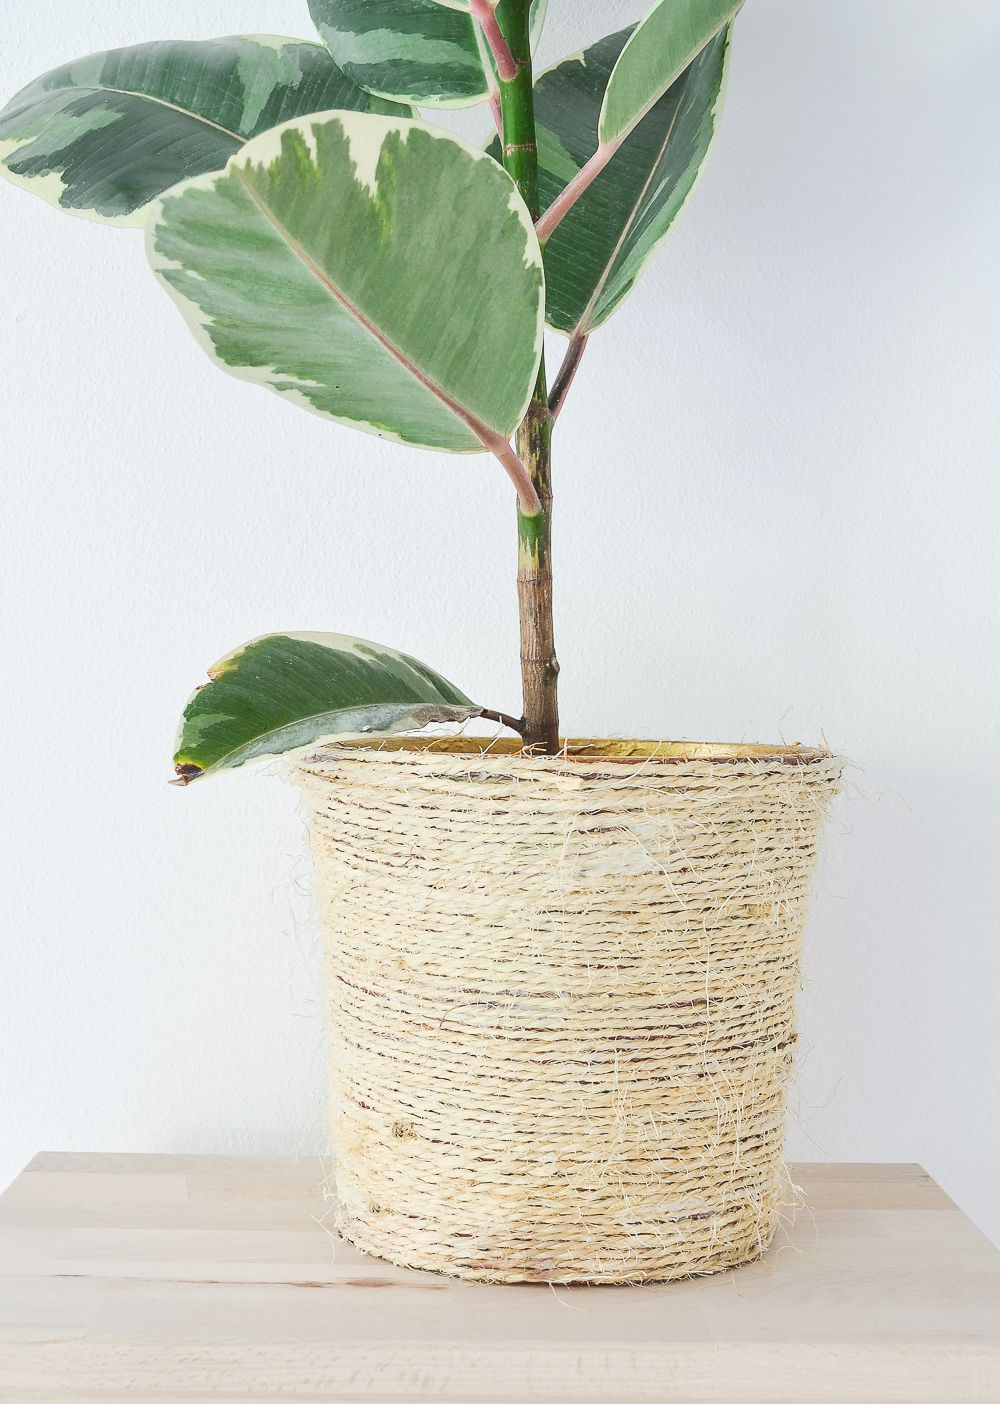 Transform an old planter with rope